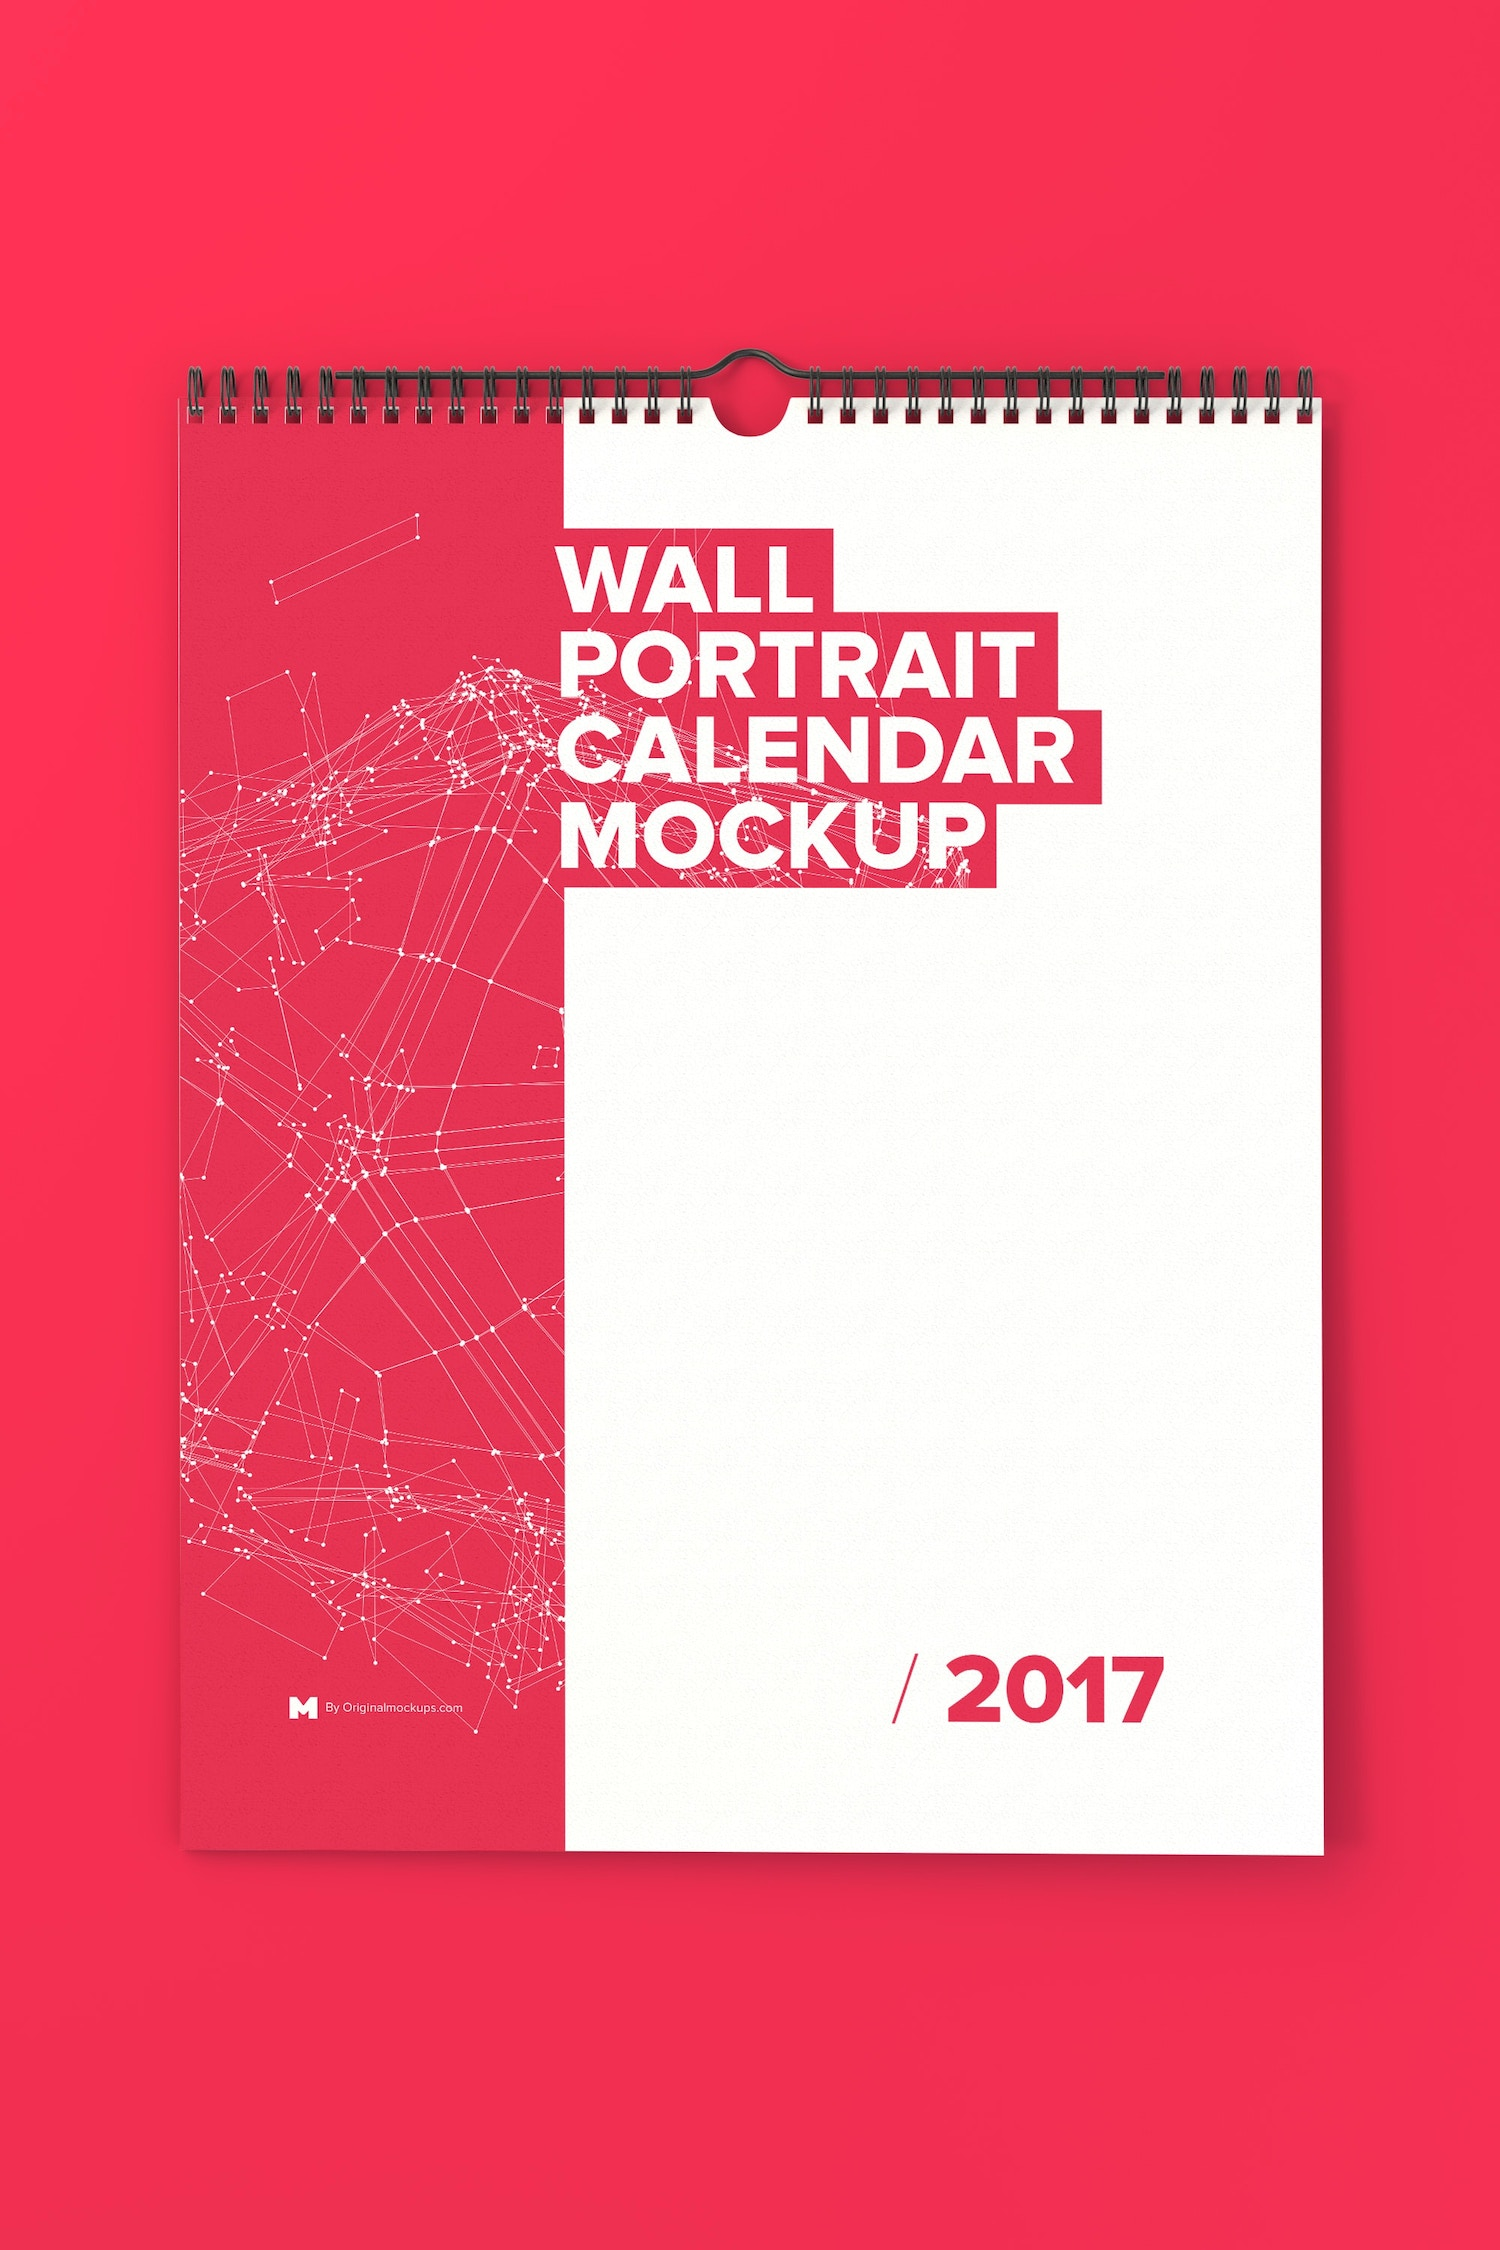 Wall Portrait Calendar Mockup - Custom Background